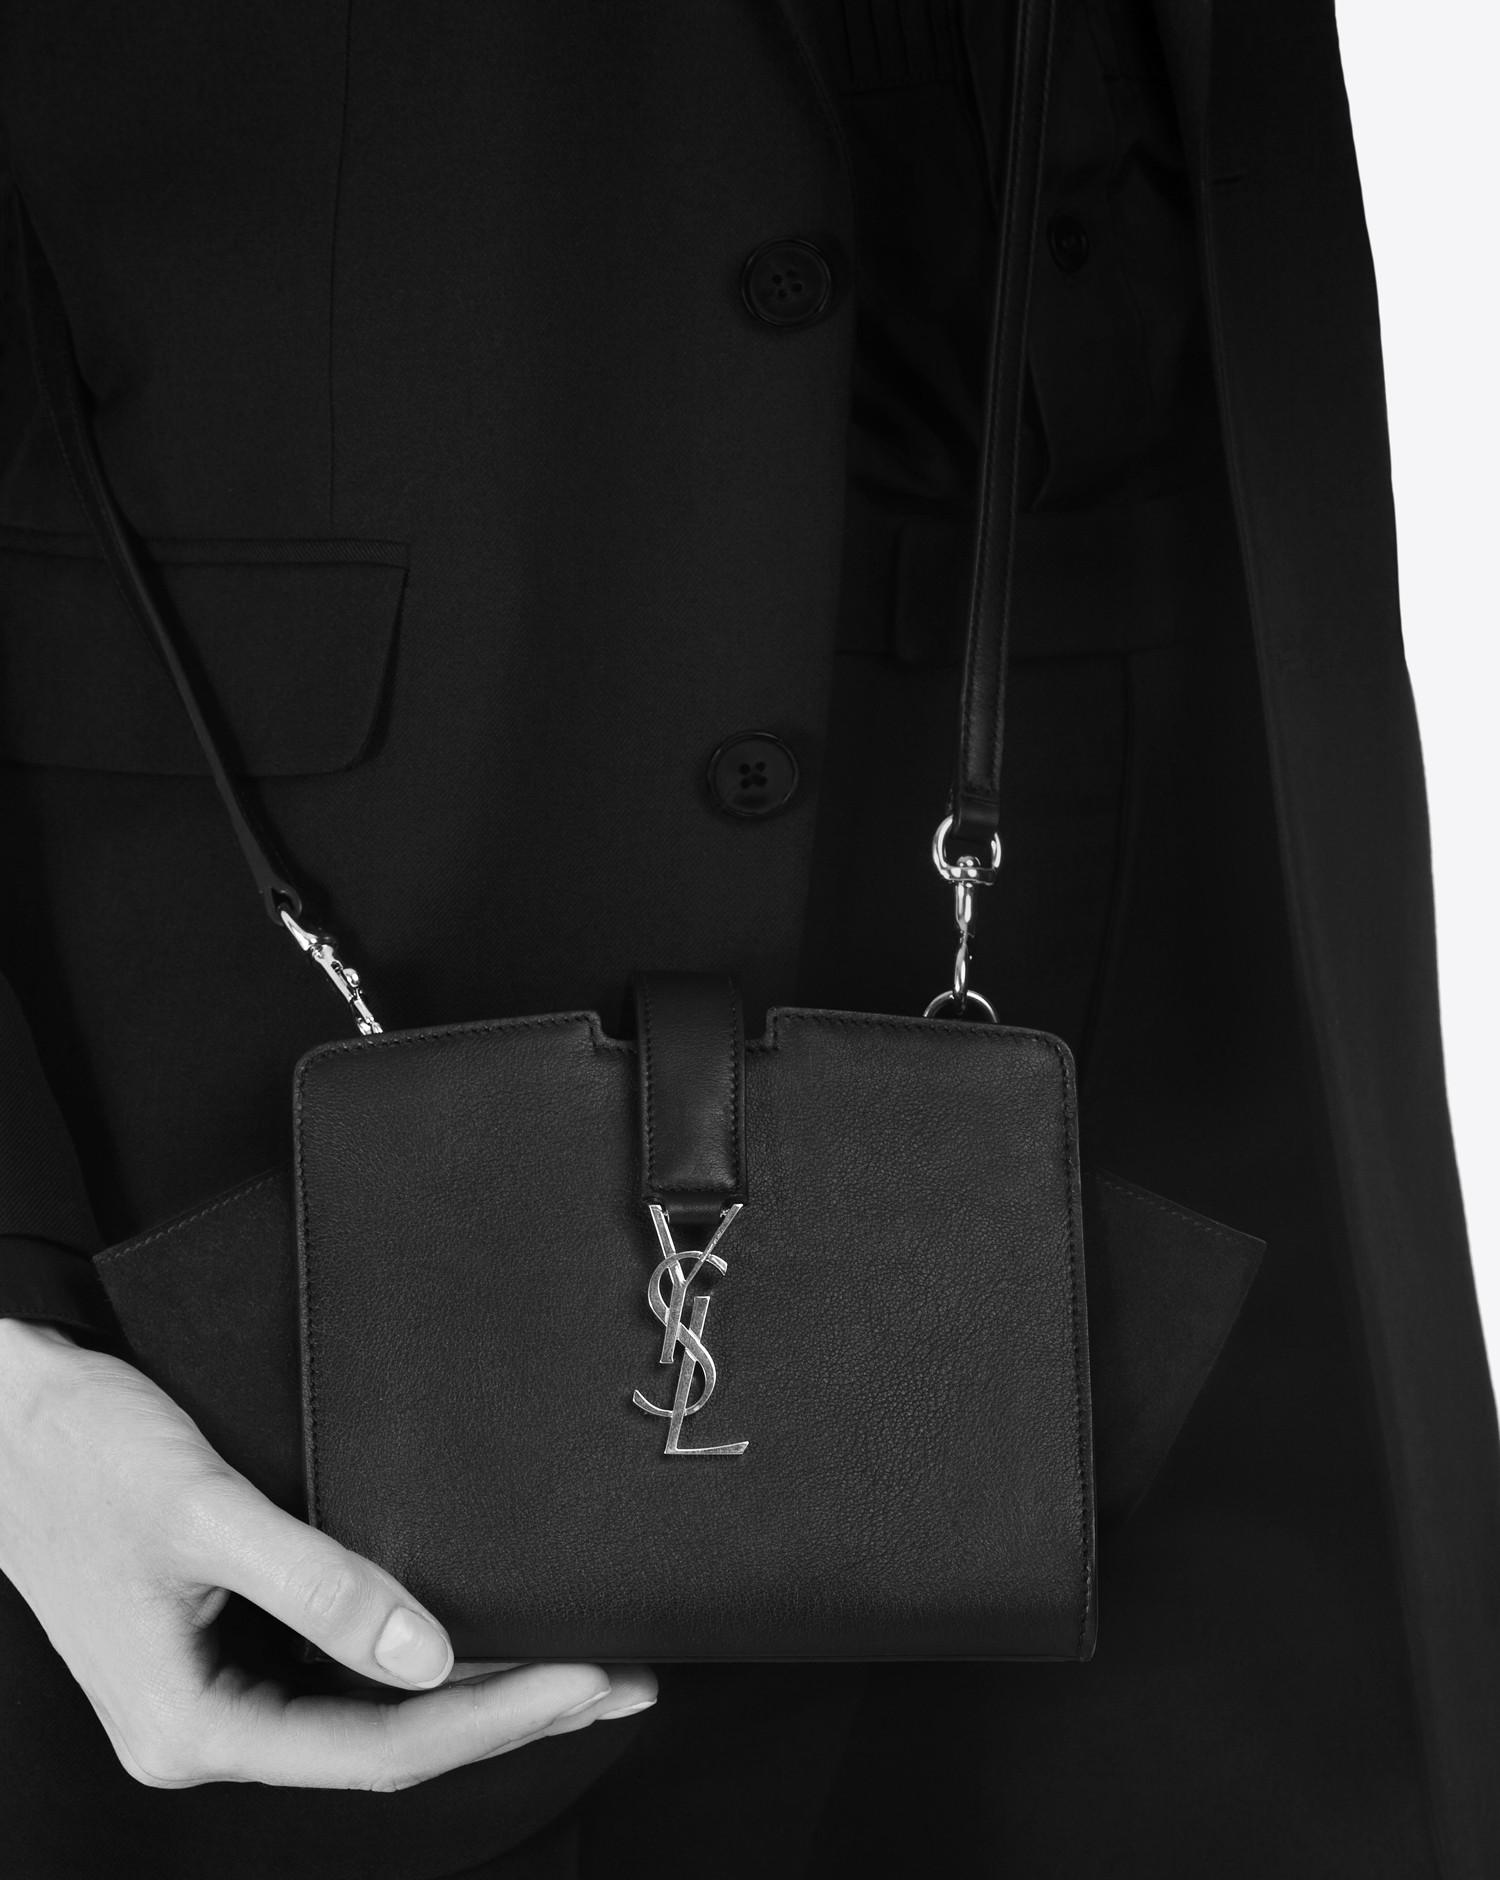 7760aea12286 Lyst - Saint Laurent Toy Ysl Cabas Bag In Pearl Grey Leather